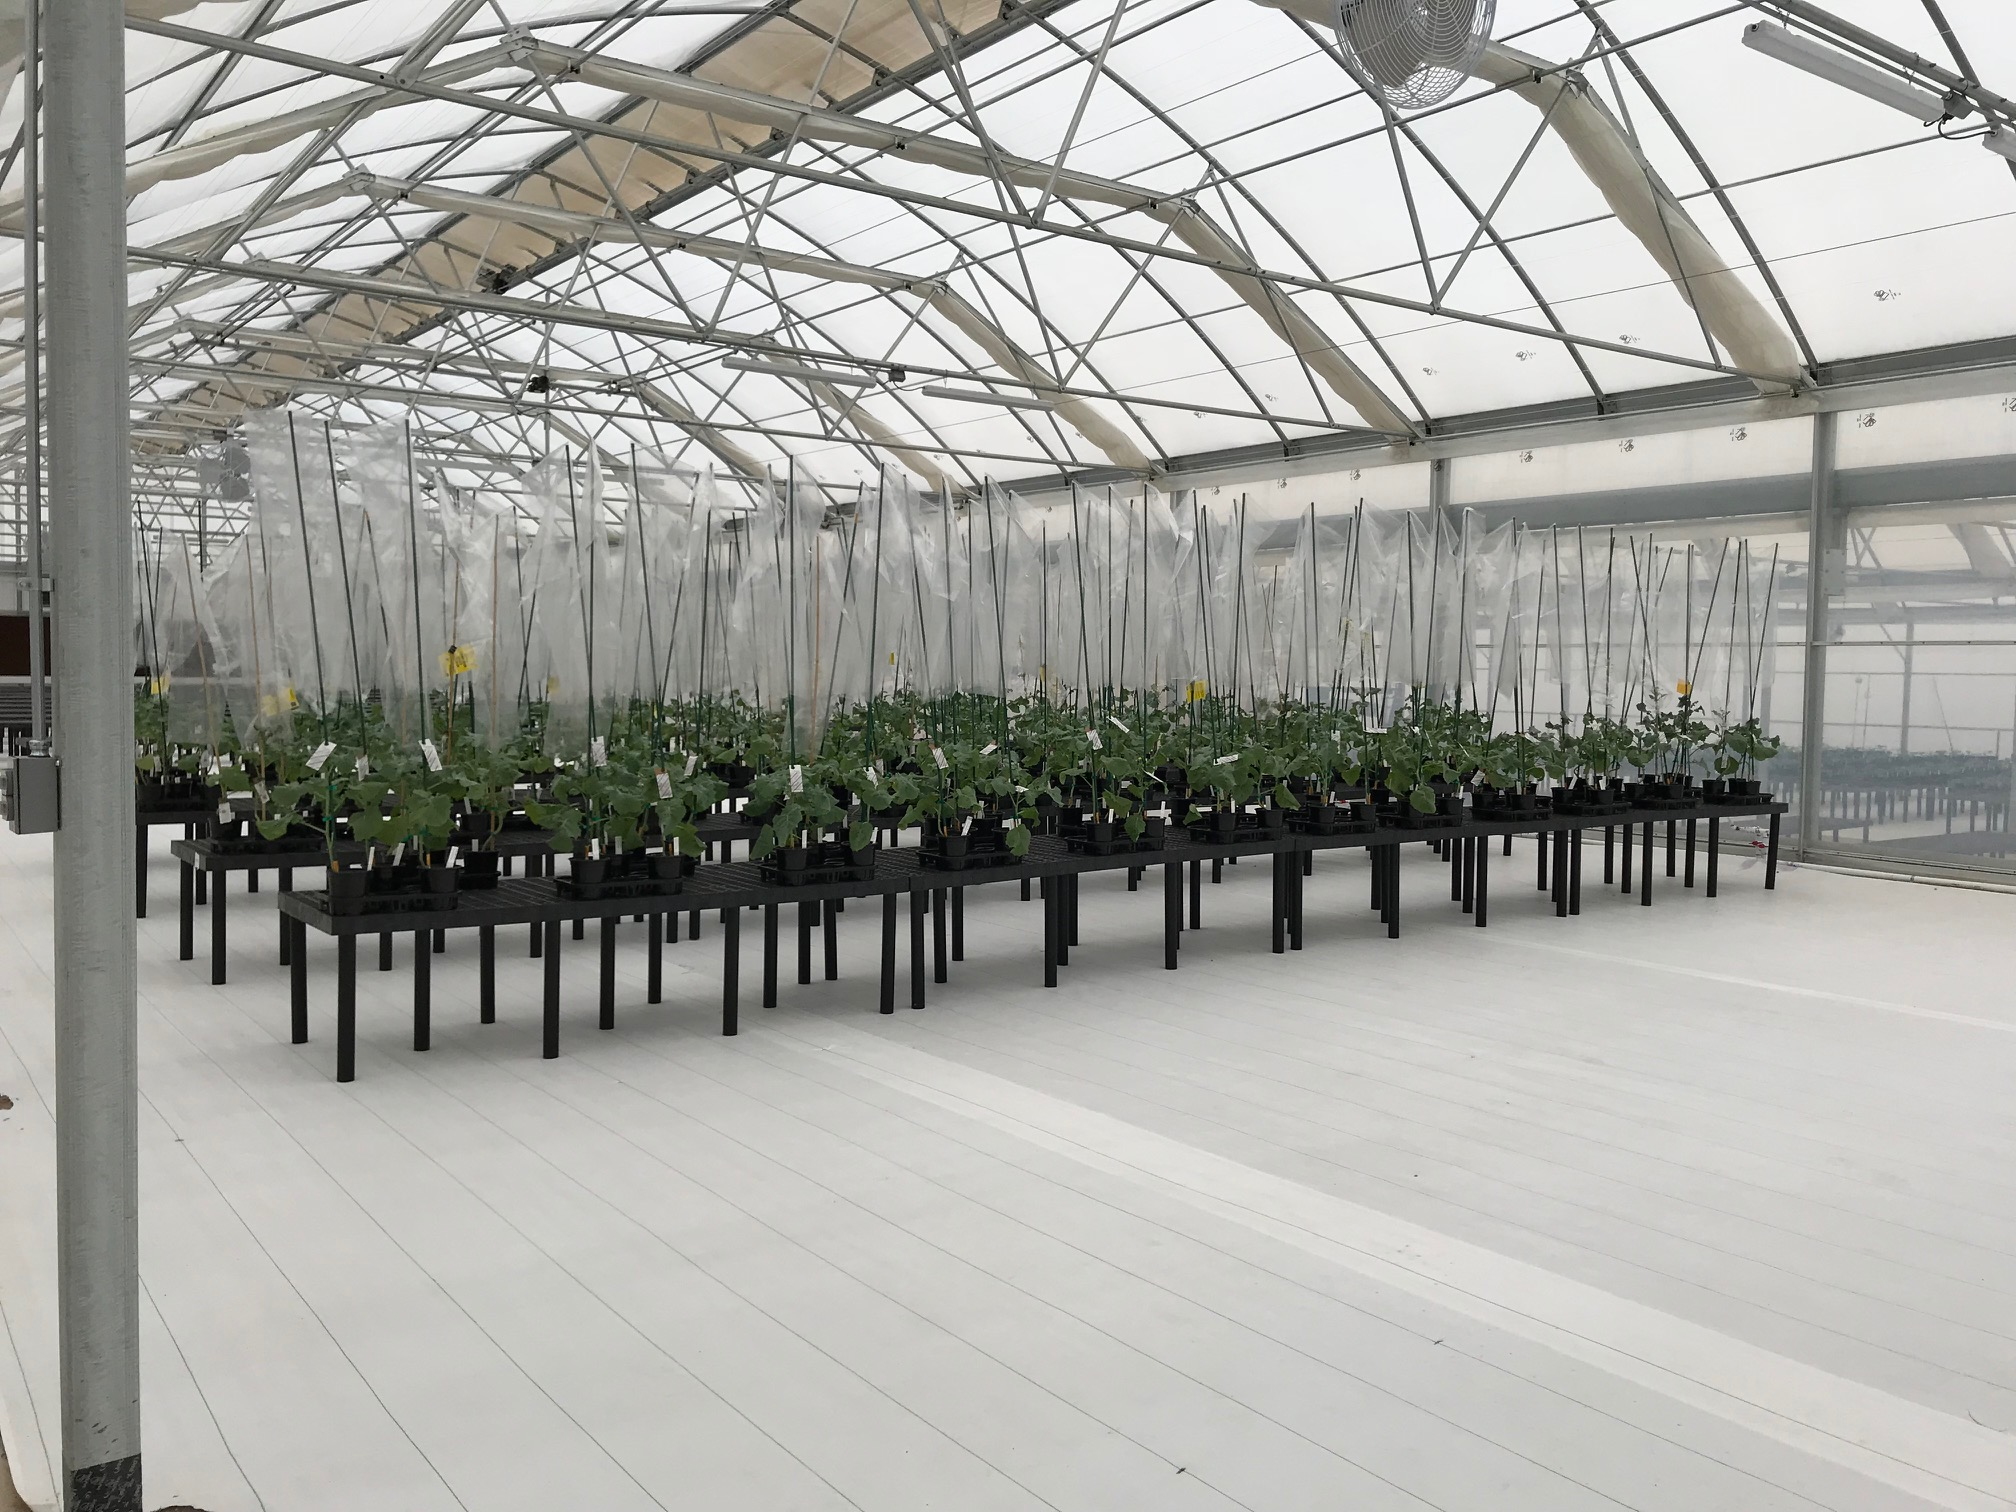 Leichtag Common's New Greenhouse Project | Commercial Greerhouse Manufacturer